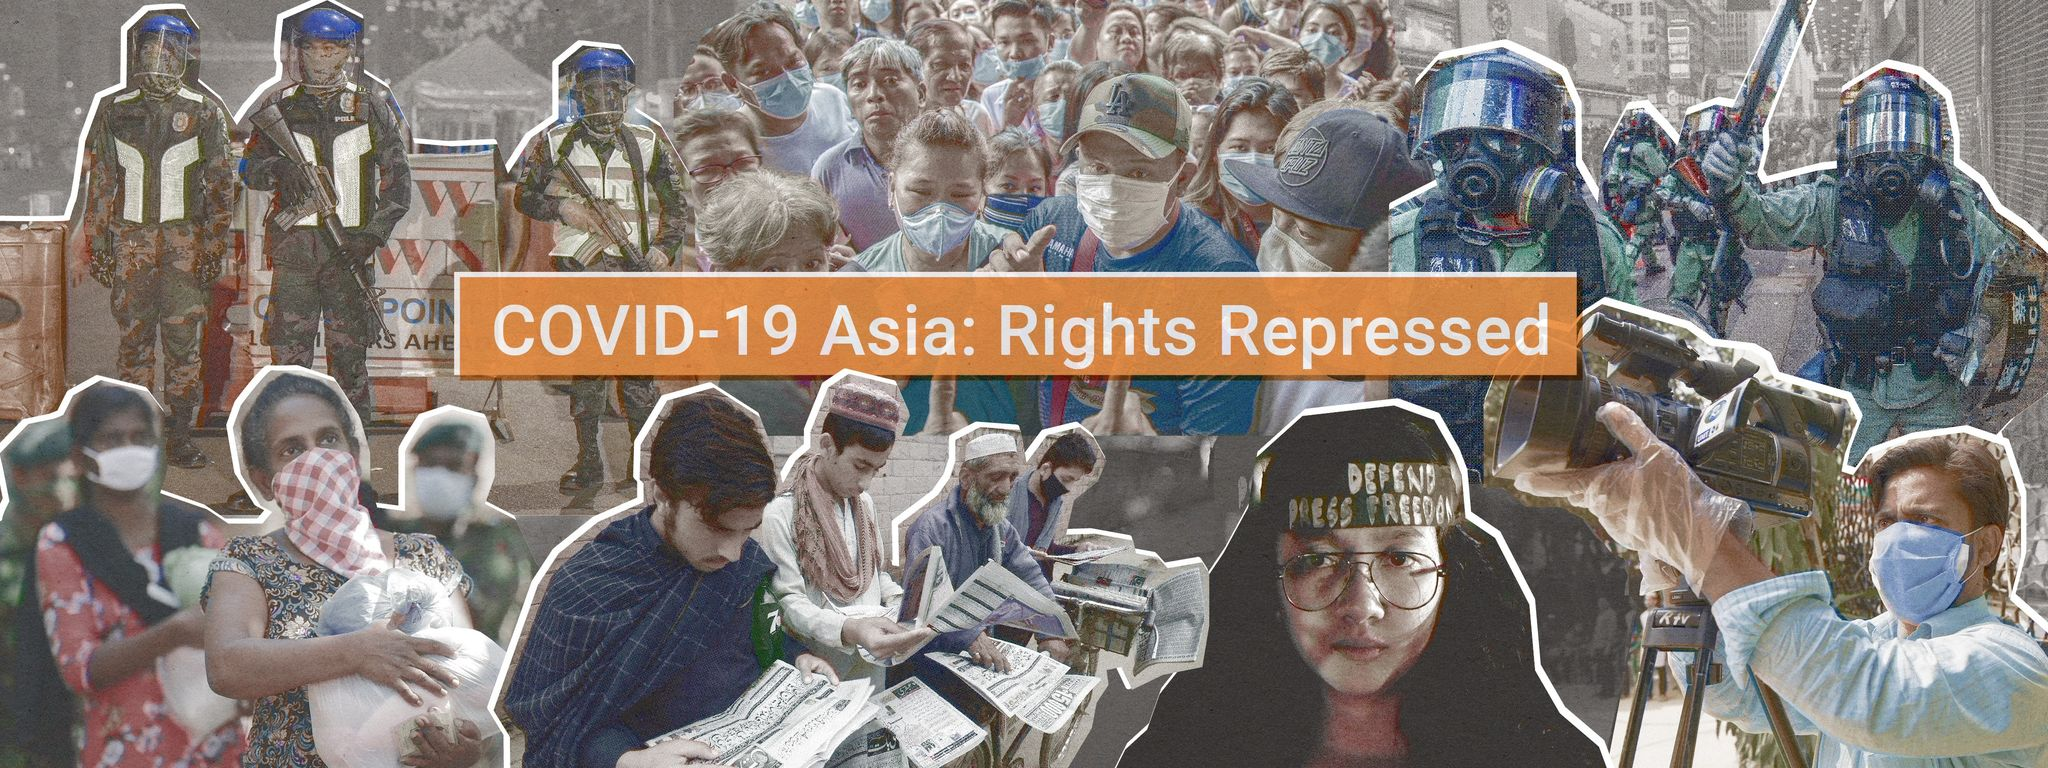 New Asia journalism series sheds light on rights violations under the cover of the pandemic